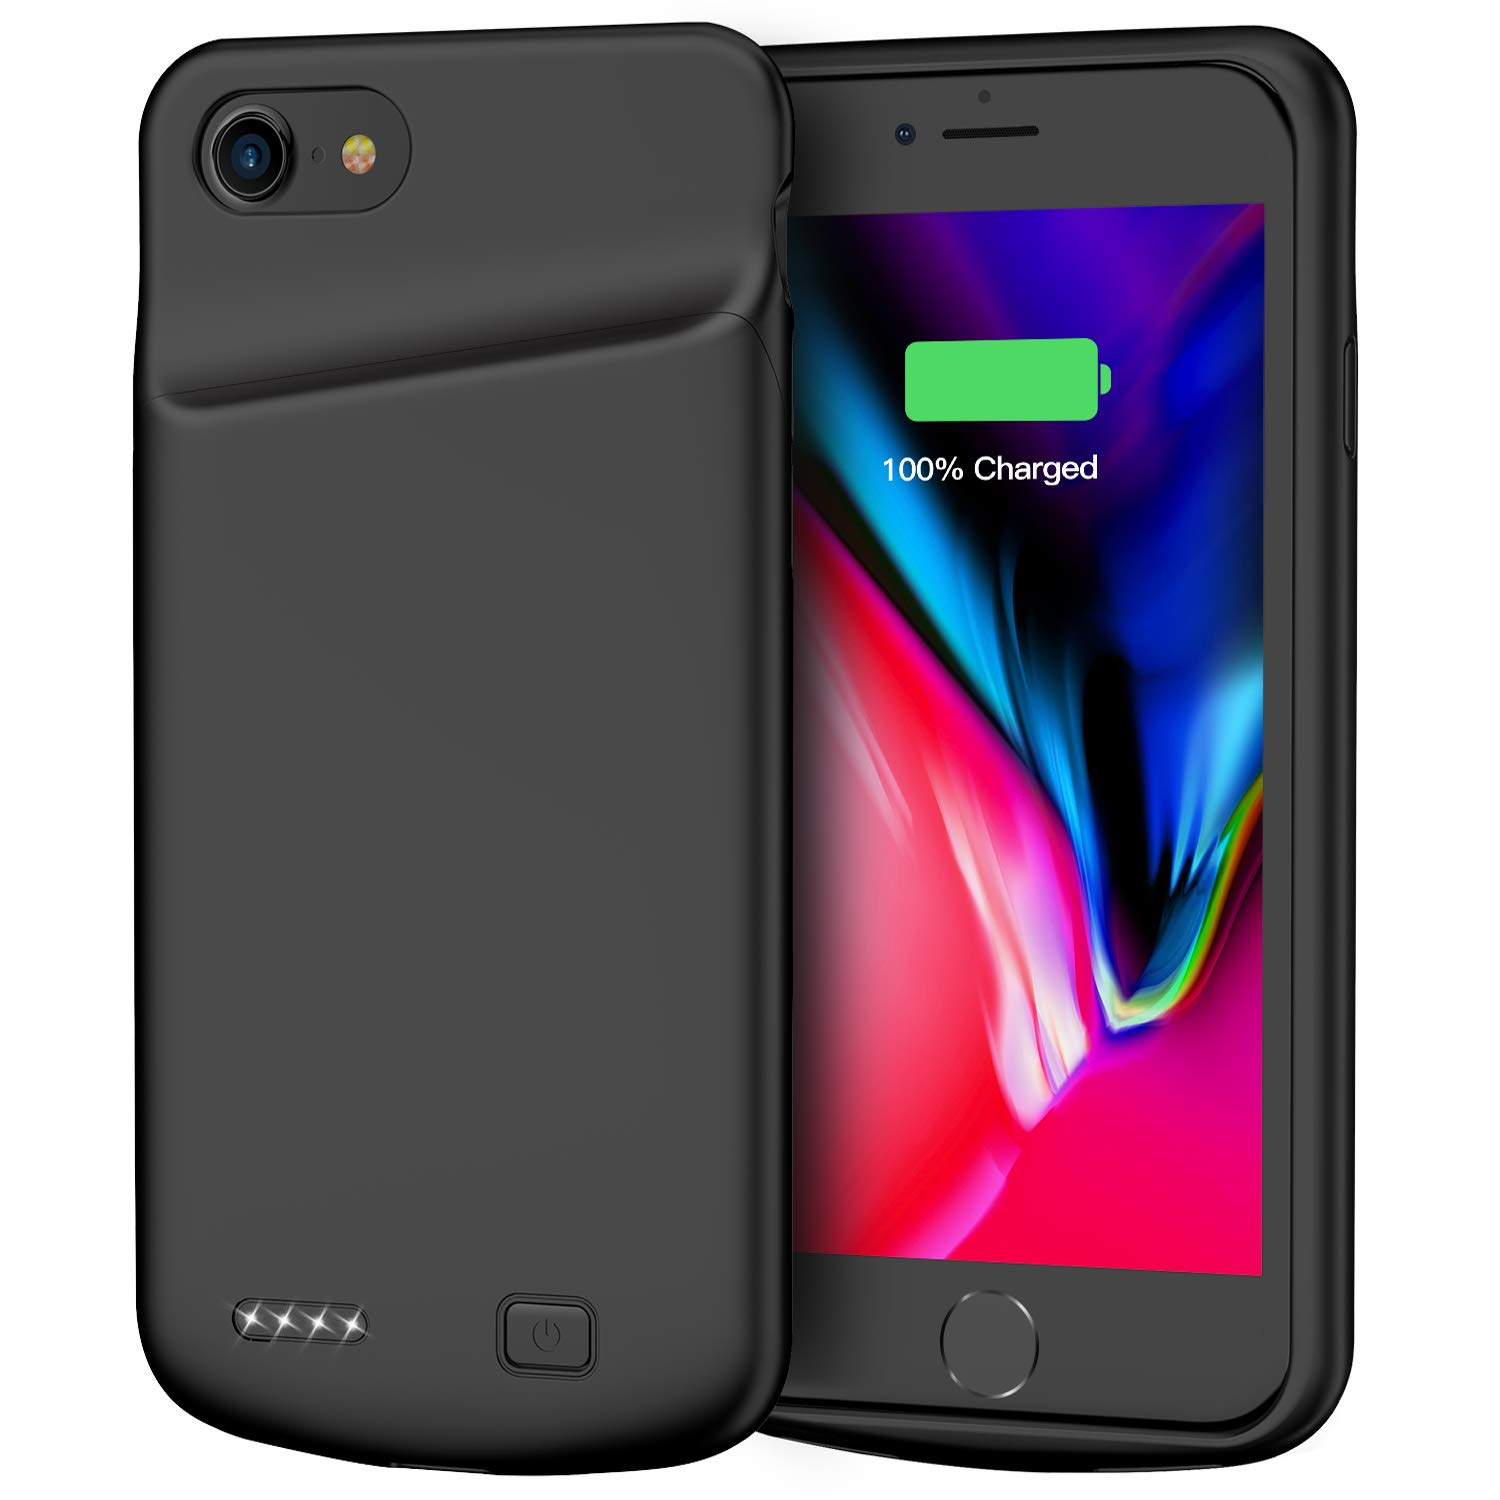 Battery Case for iPhone 7/8/SE 2nd Generation(2020), 4500mAh Portable Rechargeable Protective Charging Case for iPhone 7/8/SE 2020 (4.7 inch)-Black